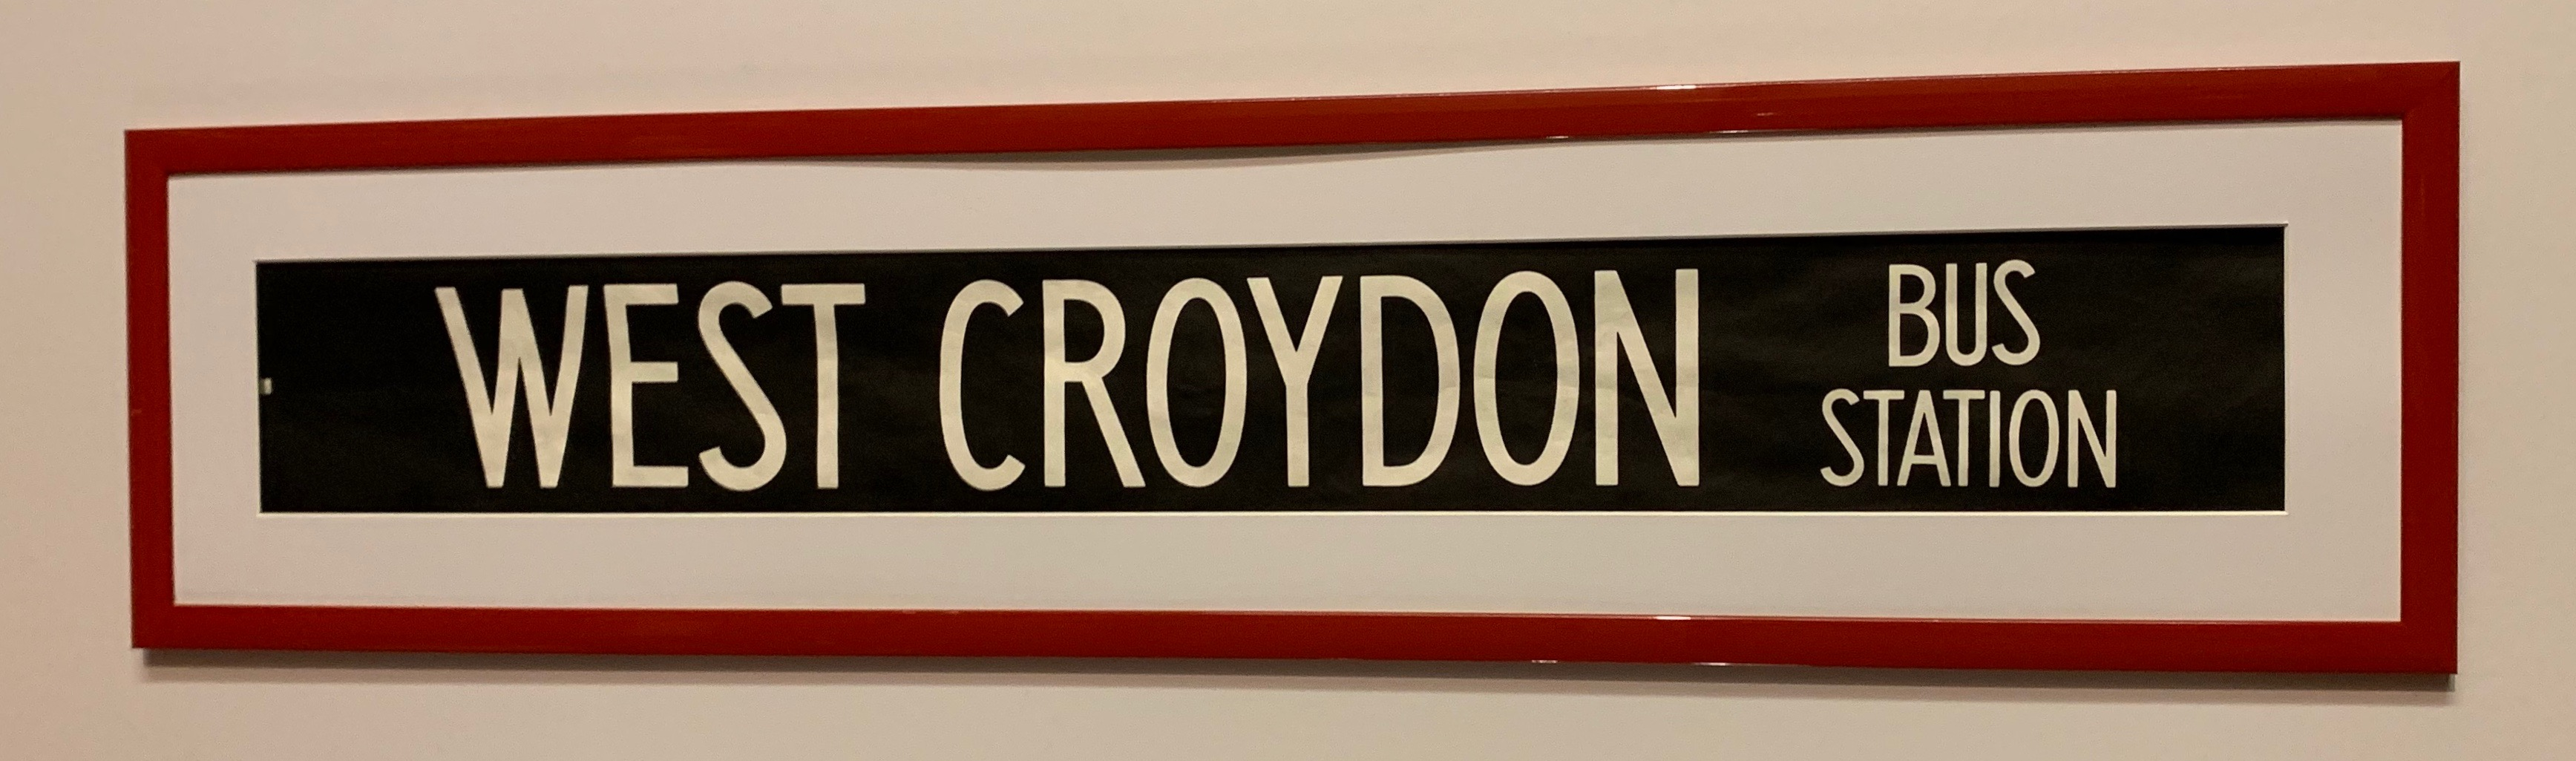 West Croydon